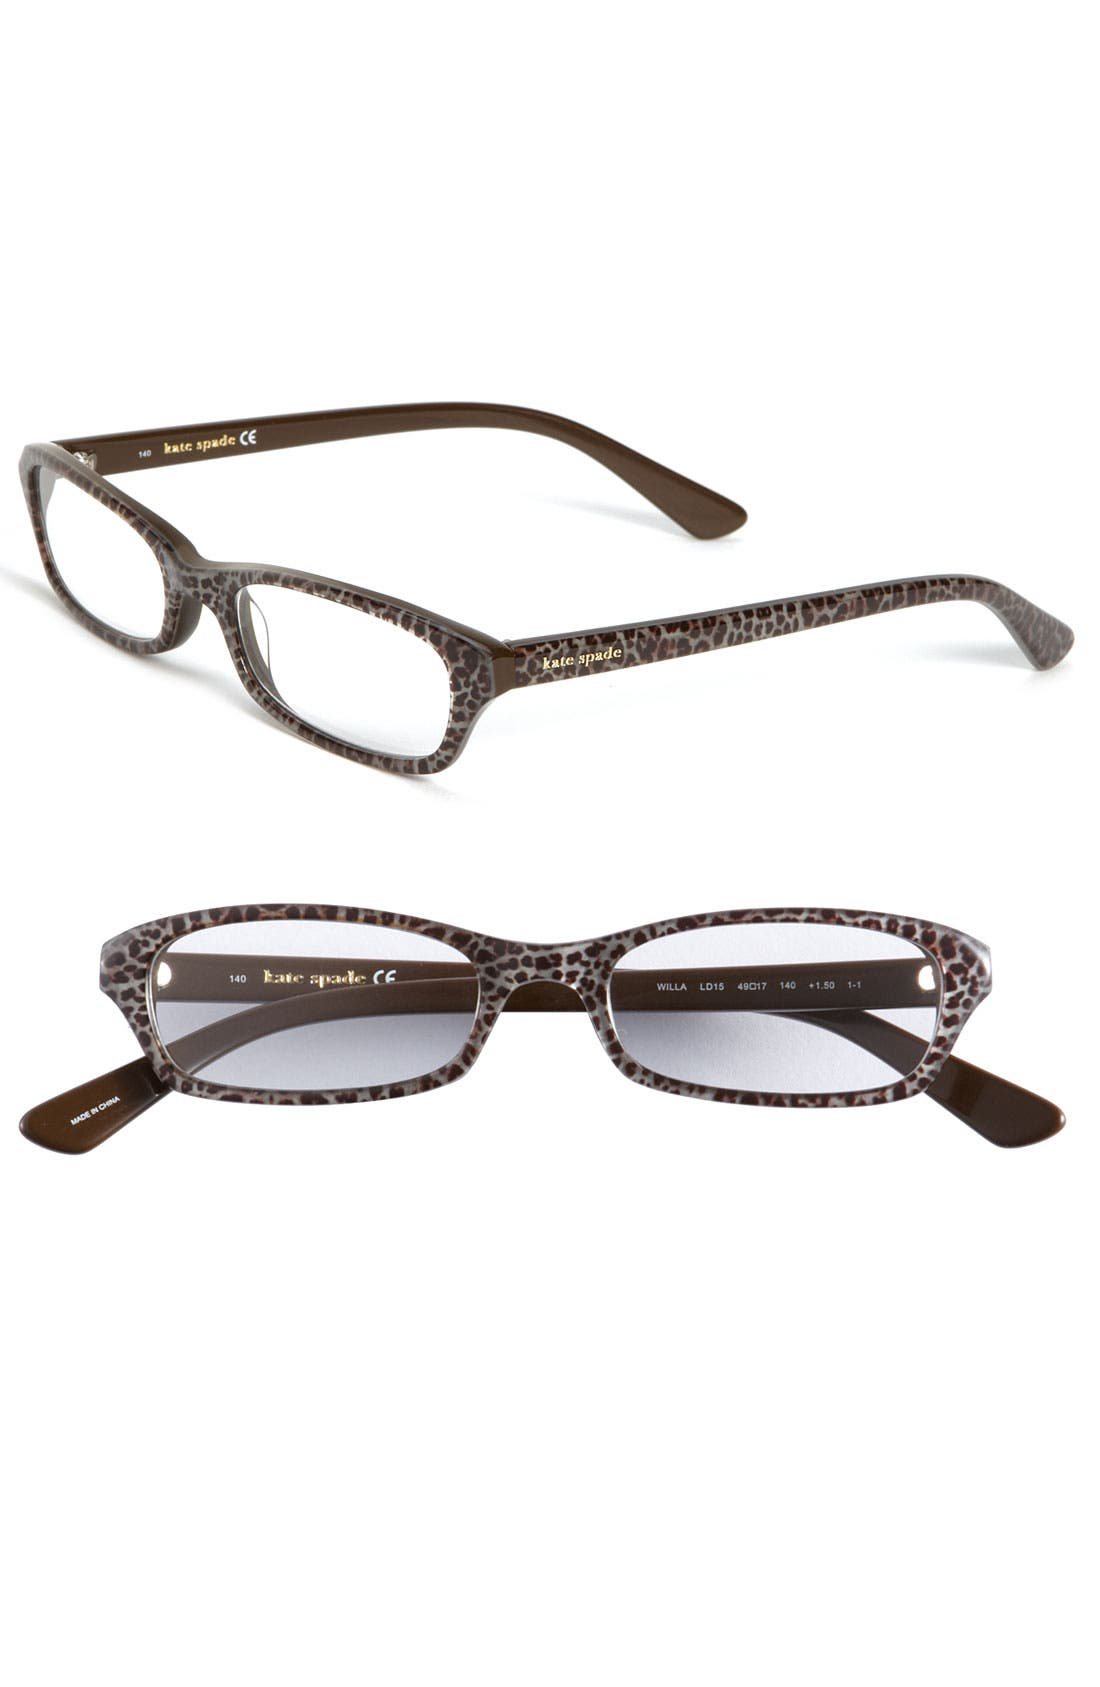 Alternate Image 1 Selected - kate spade new york 'willa' reading glasses (Online Only)